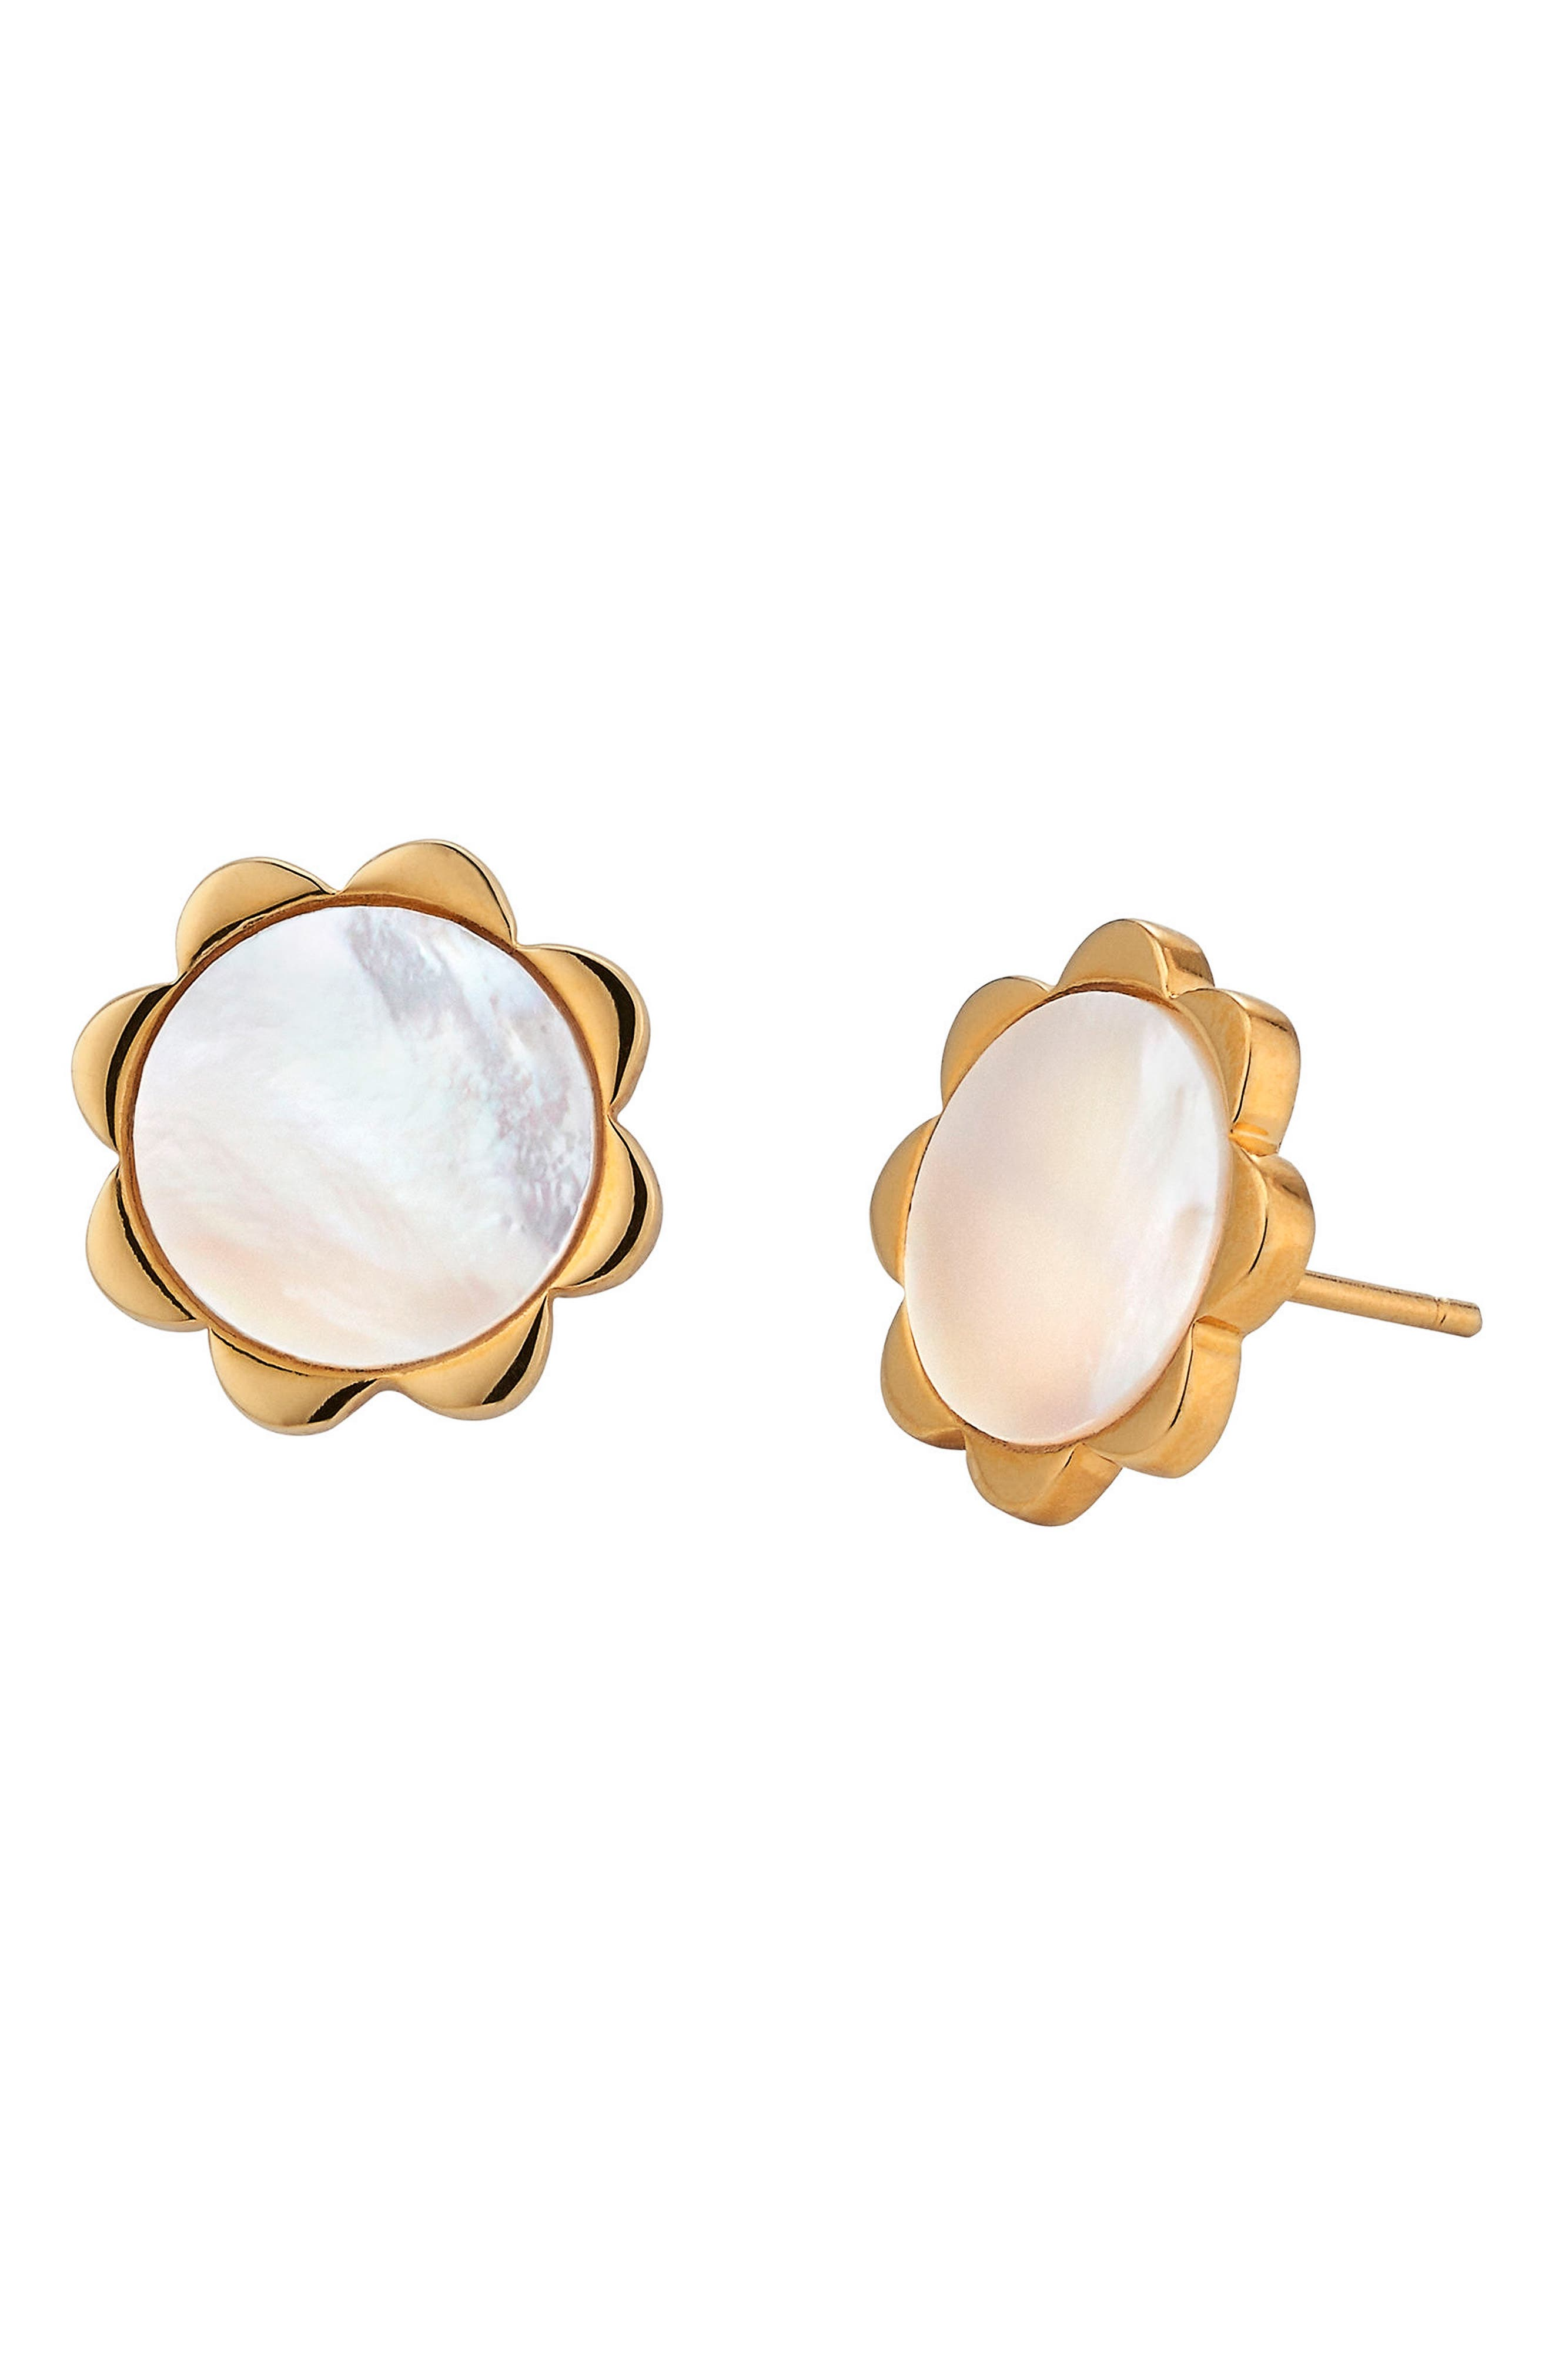 Flower Mother-of-Pearl Stud Earrings,                             Main thumbnail 1, color,                             GOLD - MOTHER OF PEARL